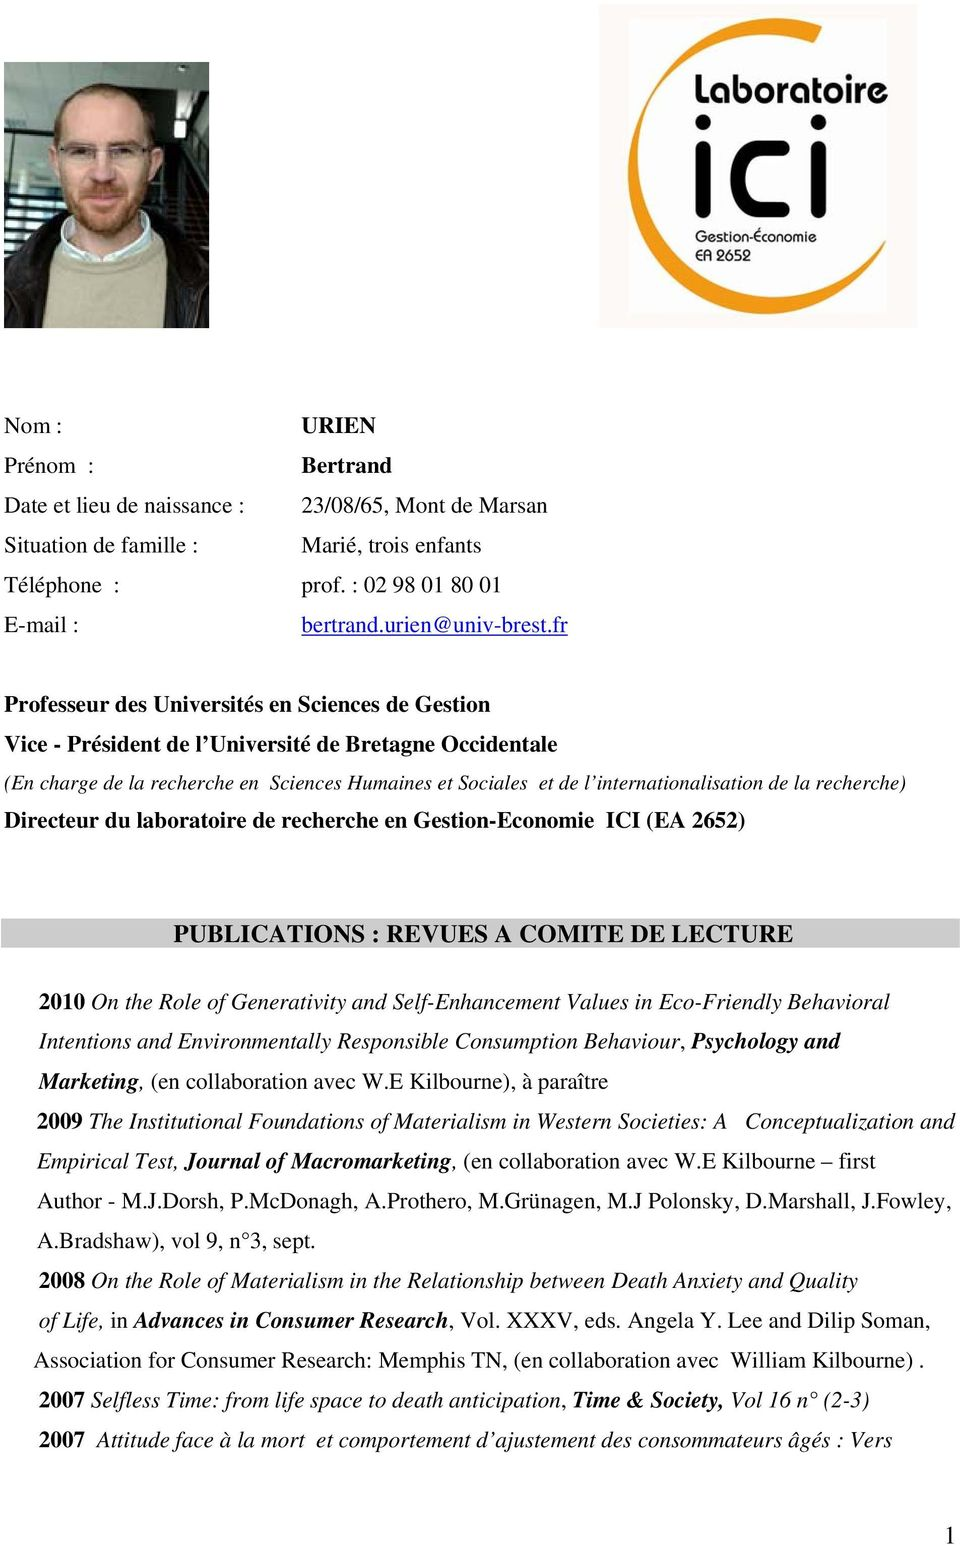 de la recherche) Directeur du laboratoire de recherche en Gestion-Economie ICI (EA 2652) PUBLICATIONS : REVUES A COMITE DE LECTURE 2010 On the Role of Generativity and Self-Enhancement Values in